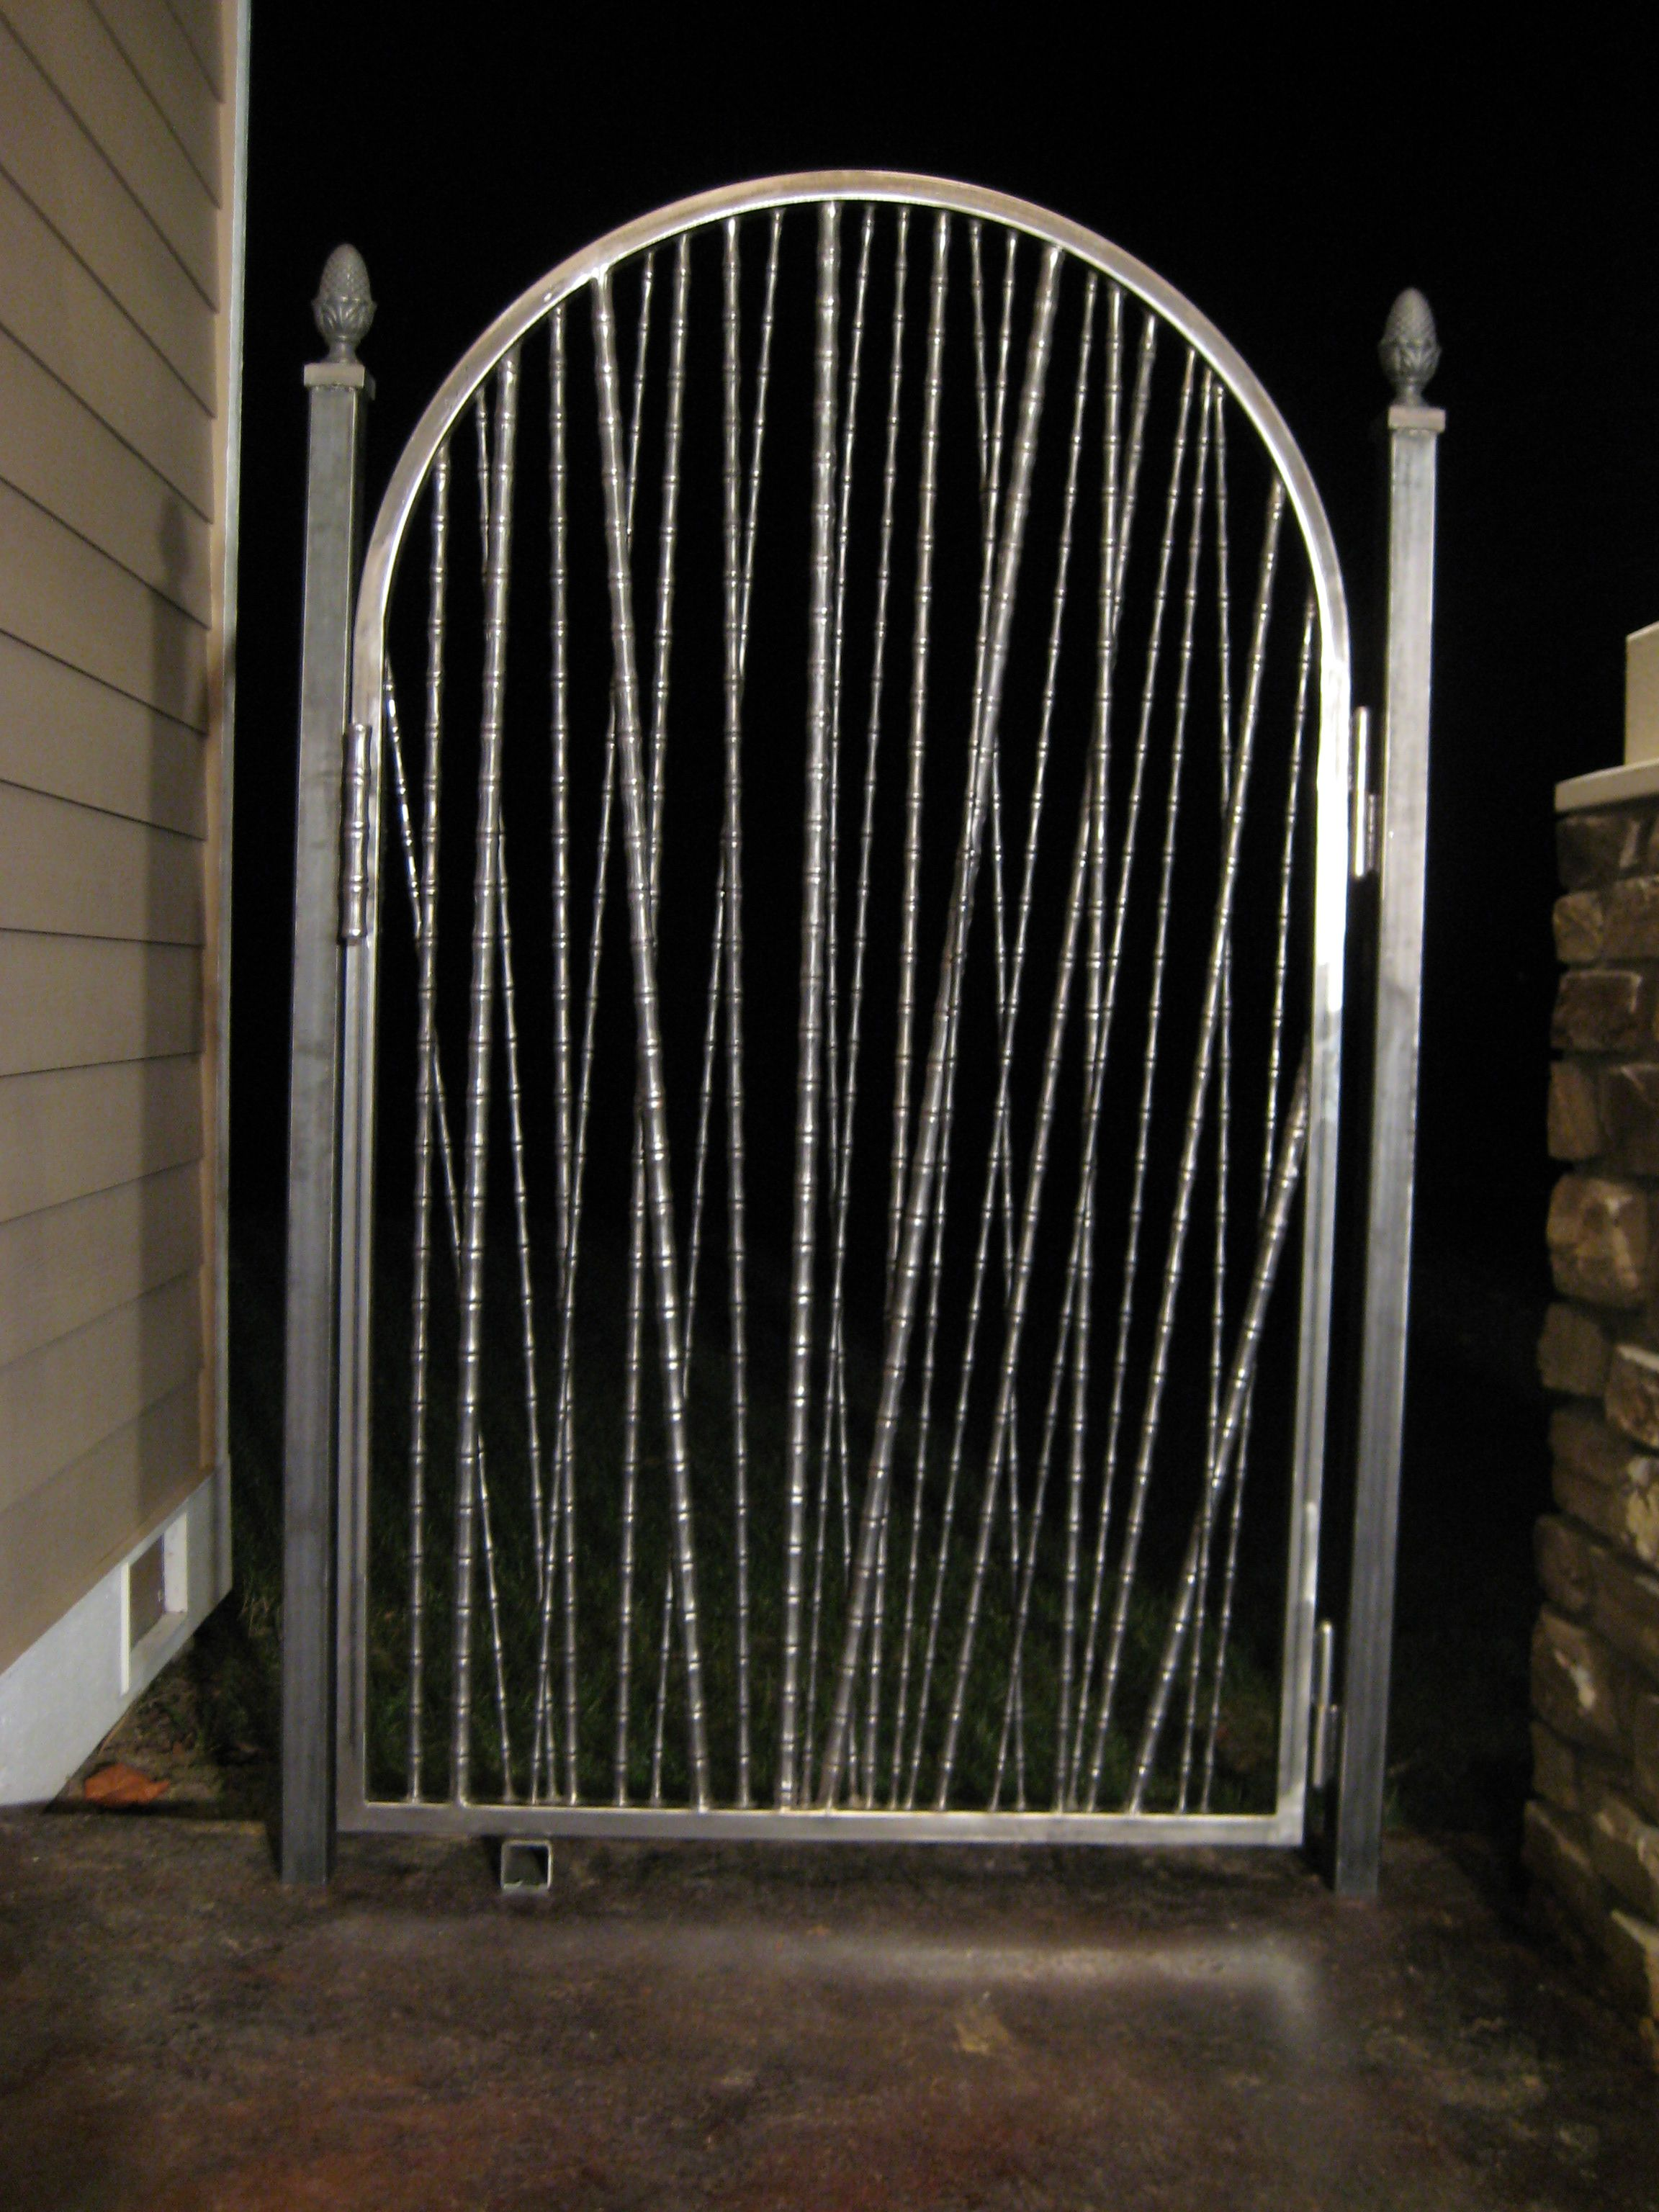 Bamboo Gate A Really Popular Design This Wrought Iron Gate Uses Different Gauge Bamboo Pieces For A Totally Entrance Gates Design Gate Design Entrance Gates